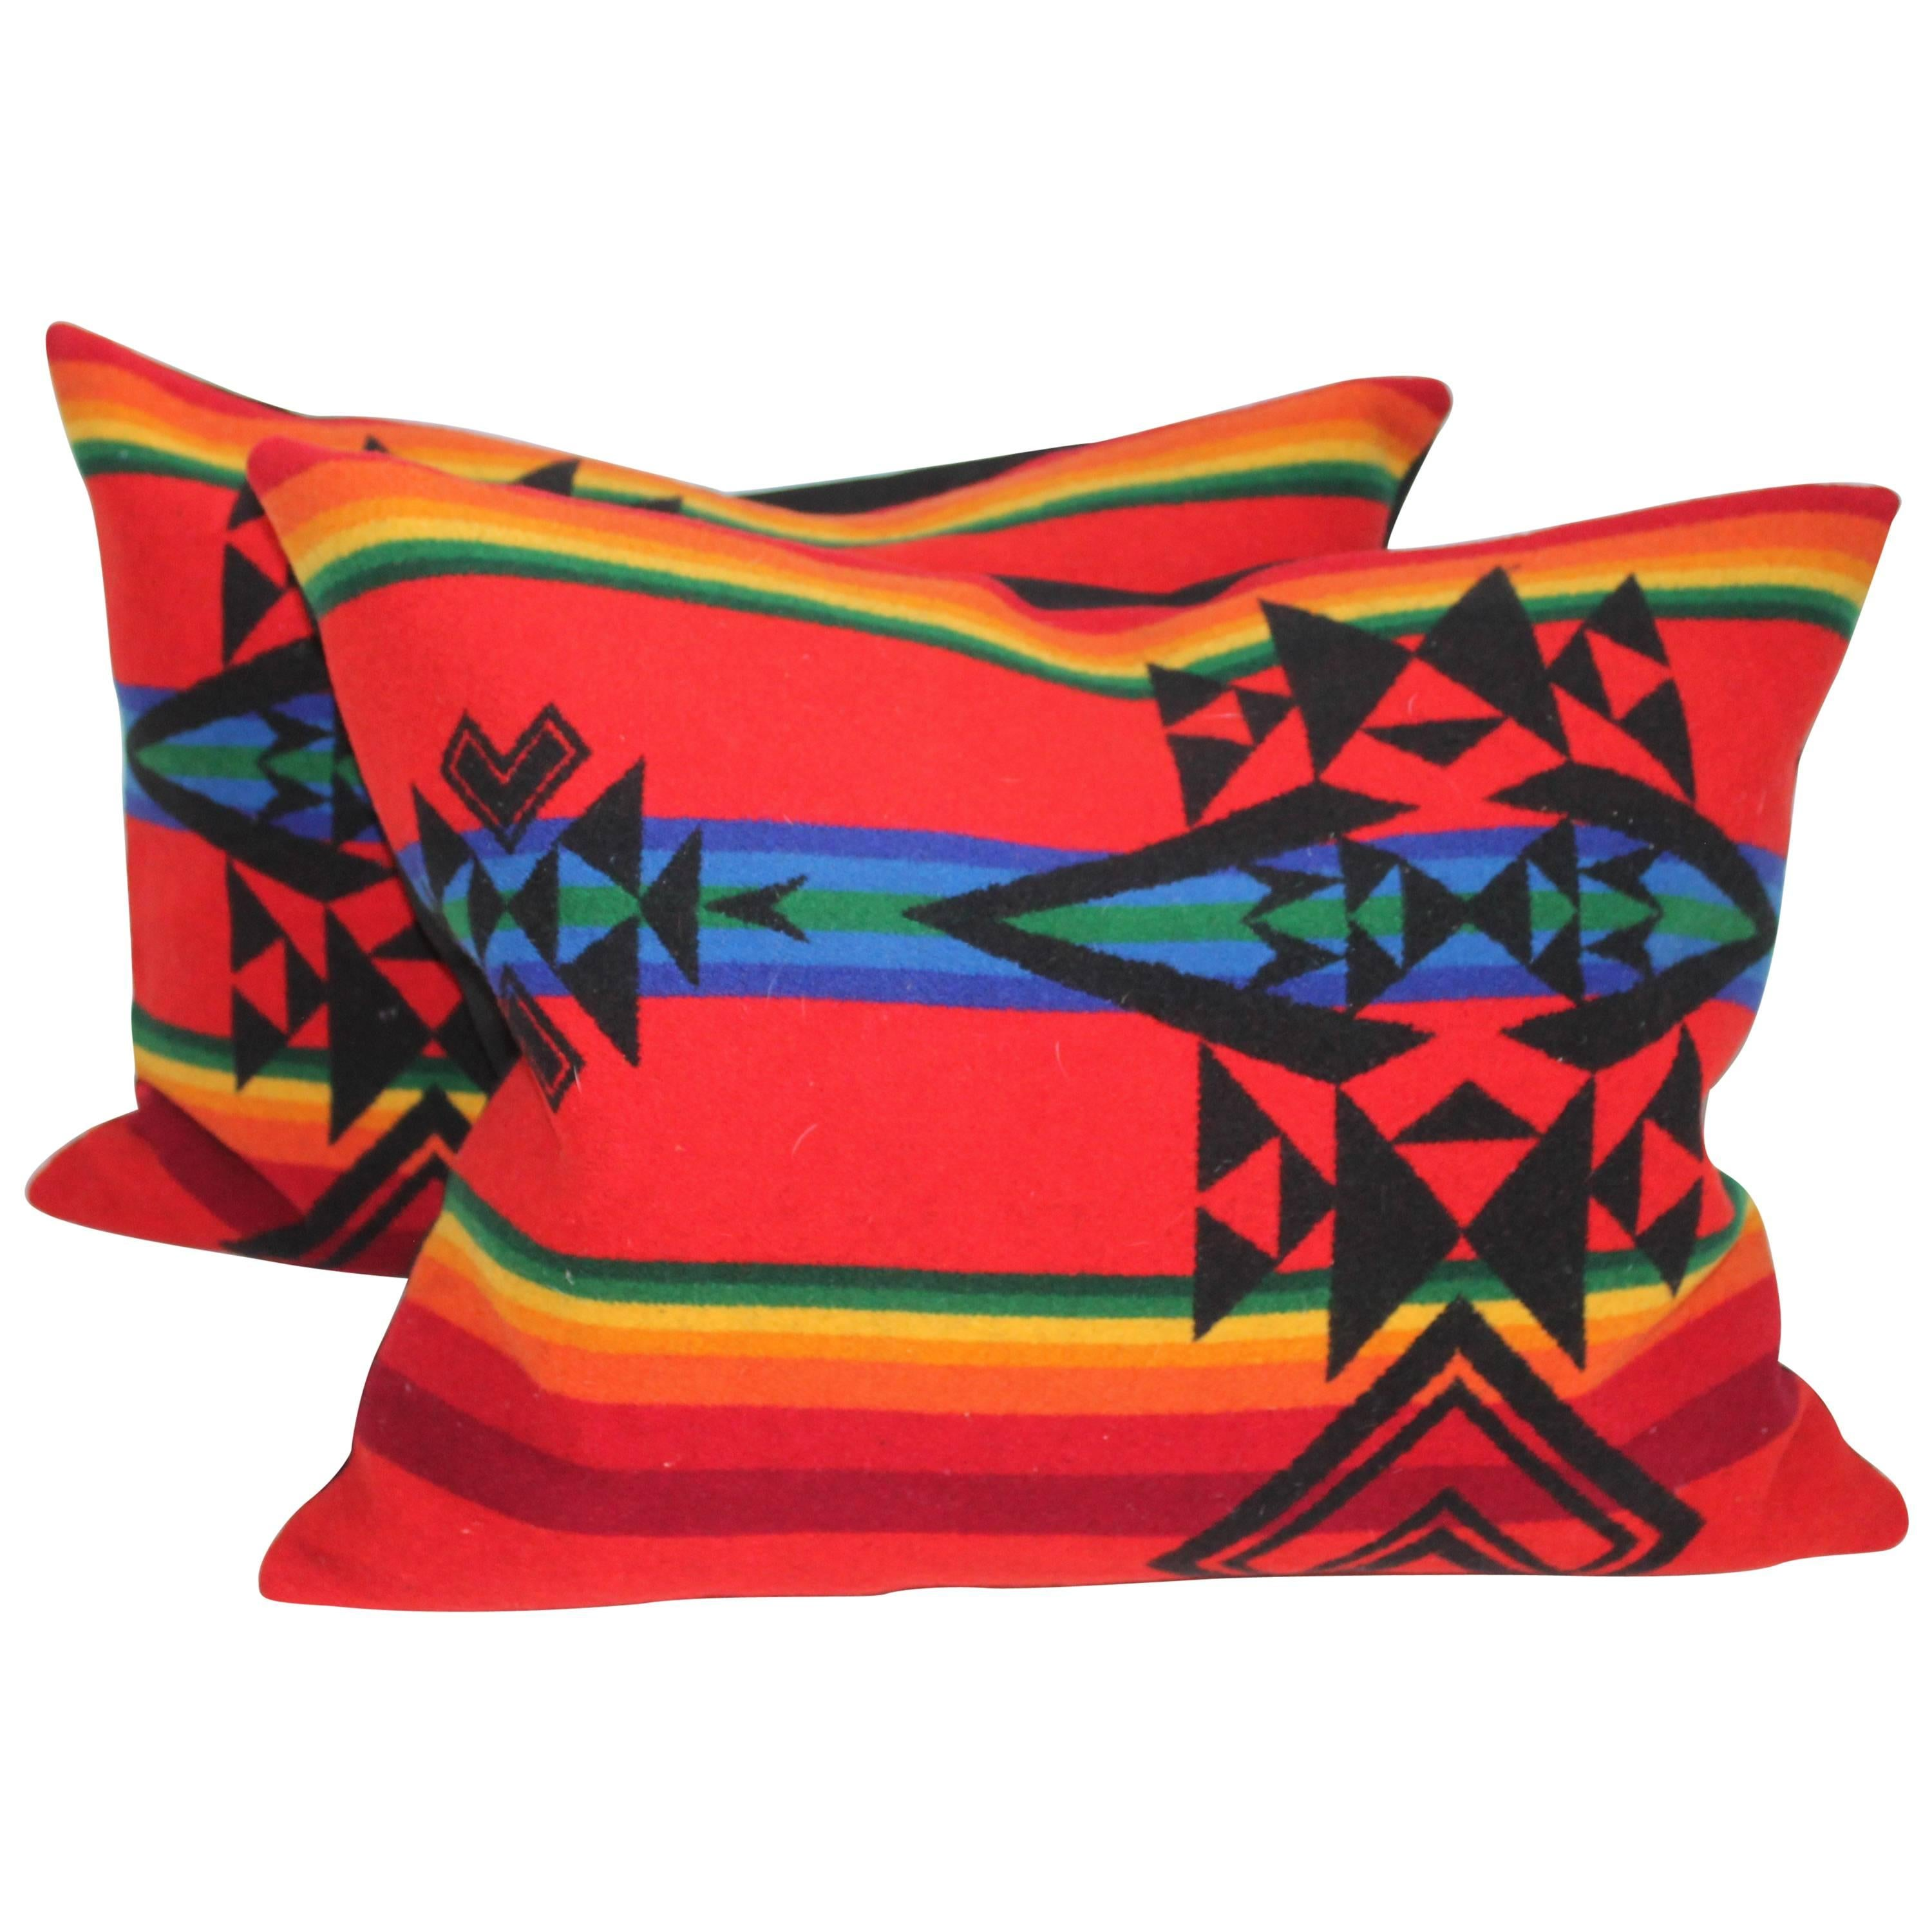 Camp Blankets Pendelton Indian Design Camp Blanket Pillows Pair